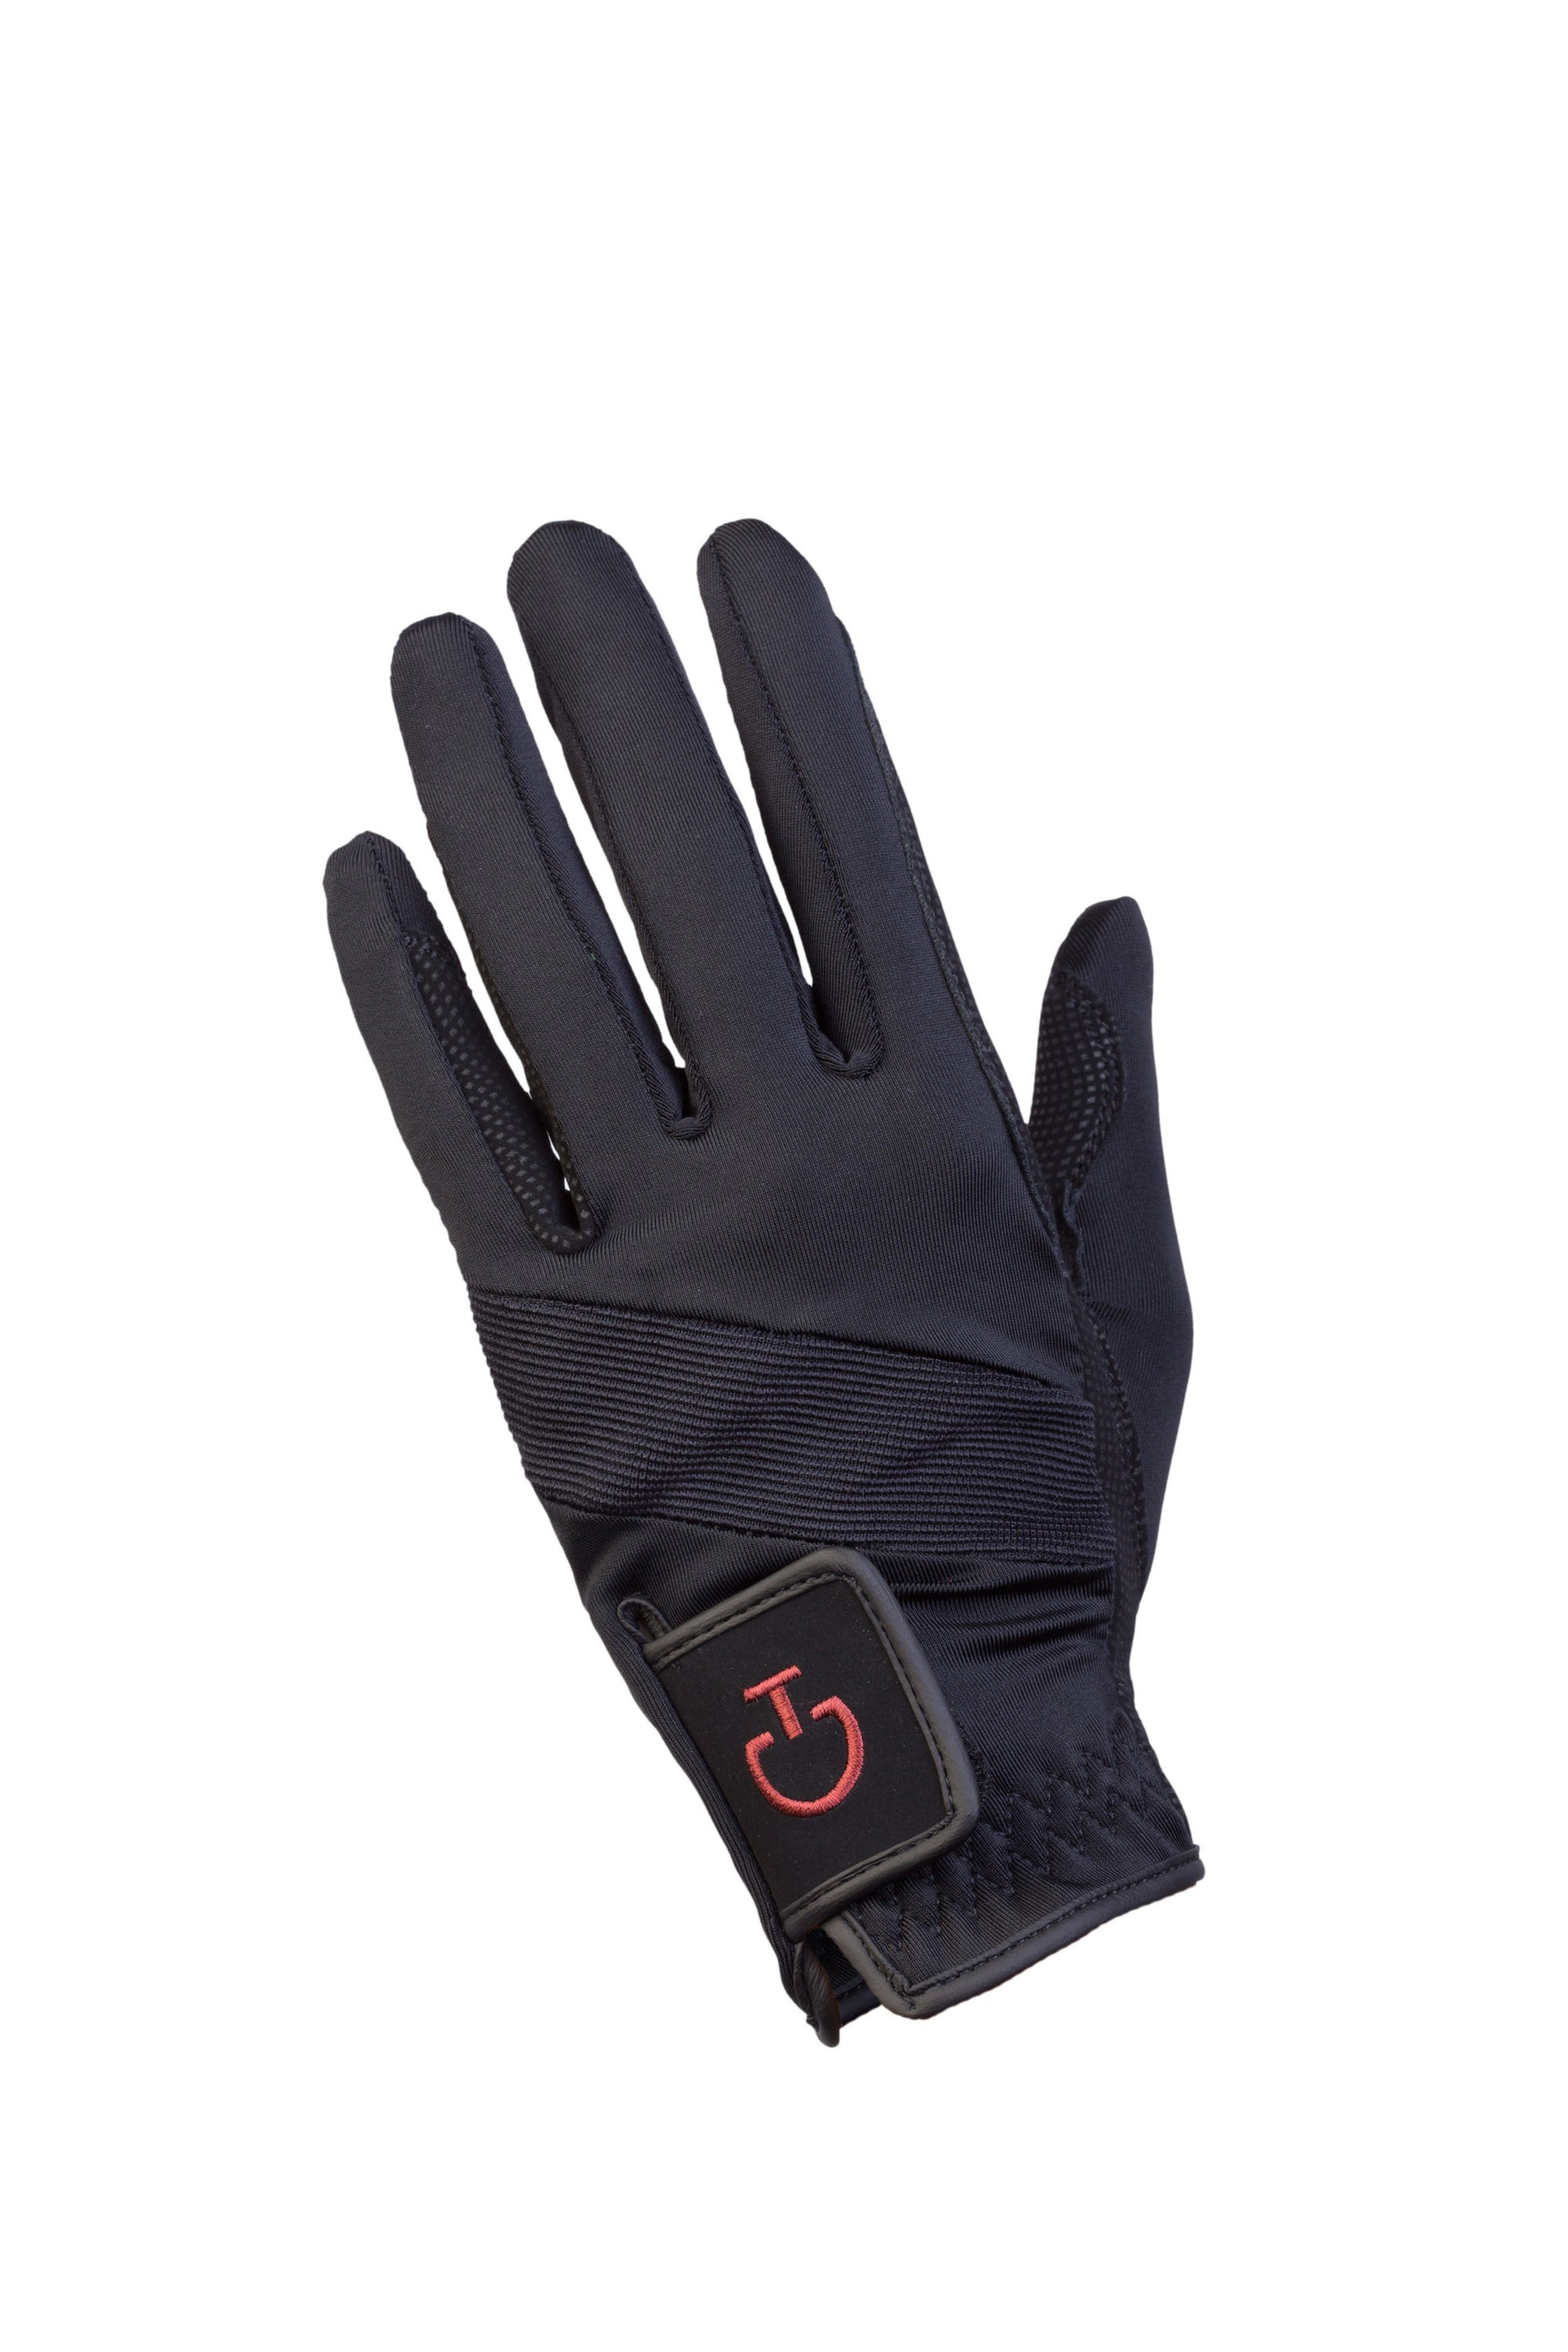 The Cavalleria Toscana technical riding gloves are perfect for all disciplines, featuring a sleek black design with subtle logo placement, special fabric and a grippy palm that will help you keep a tight rein!